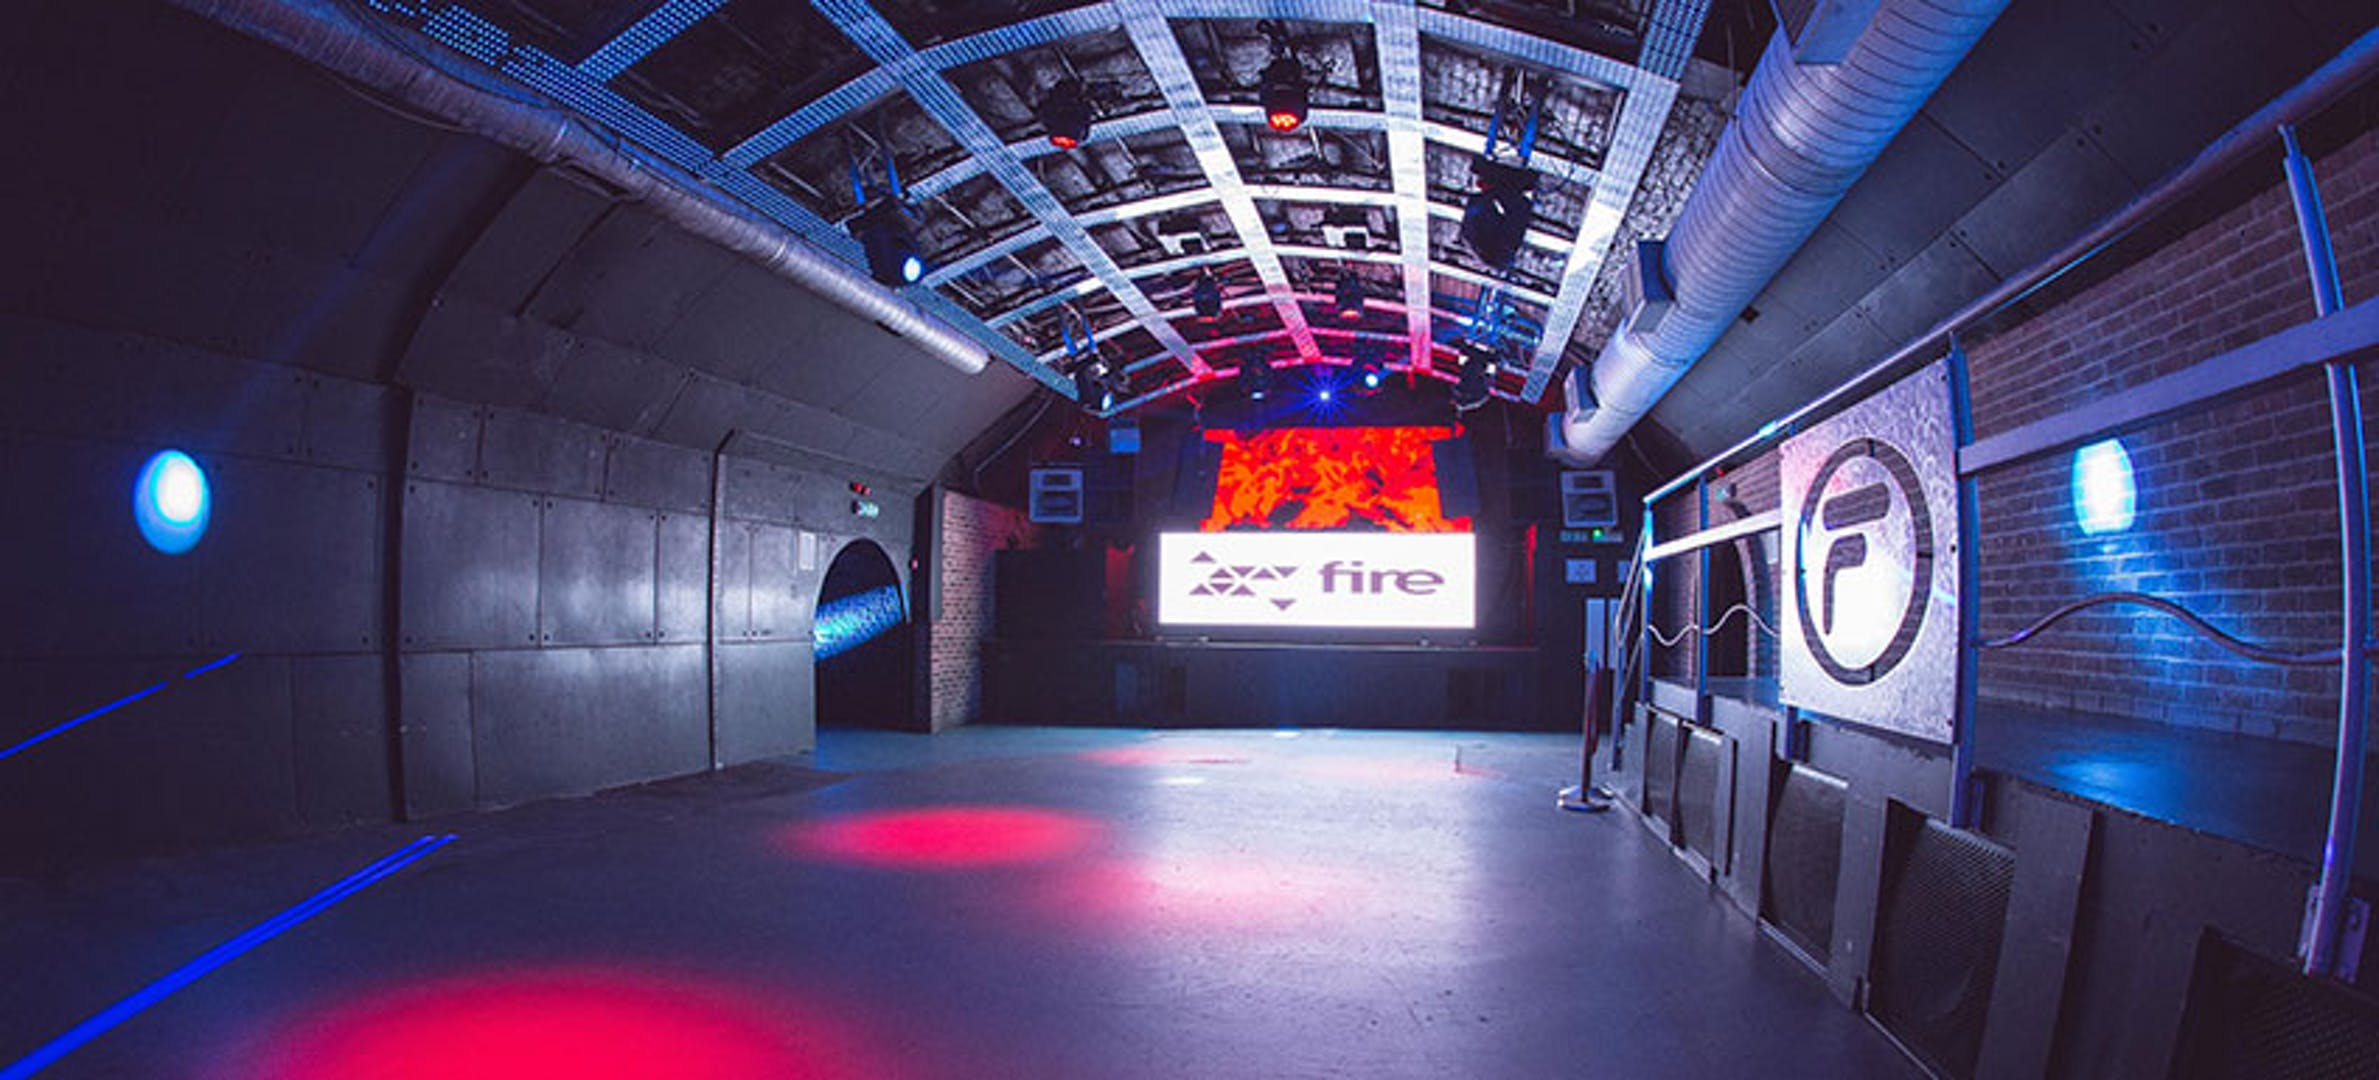 Auto Europe Car Hire >> Fire   Events Hire   Vauxhall Arches